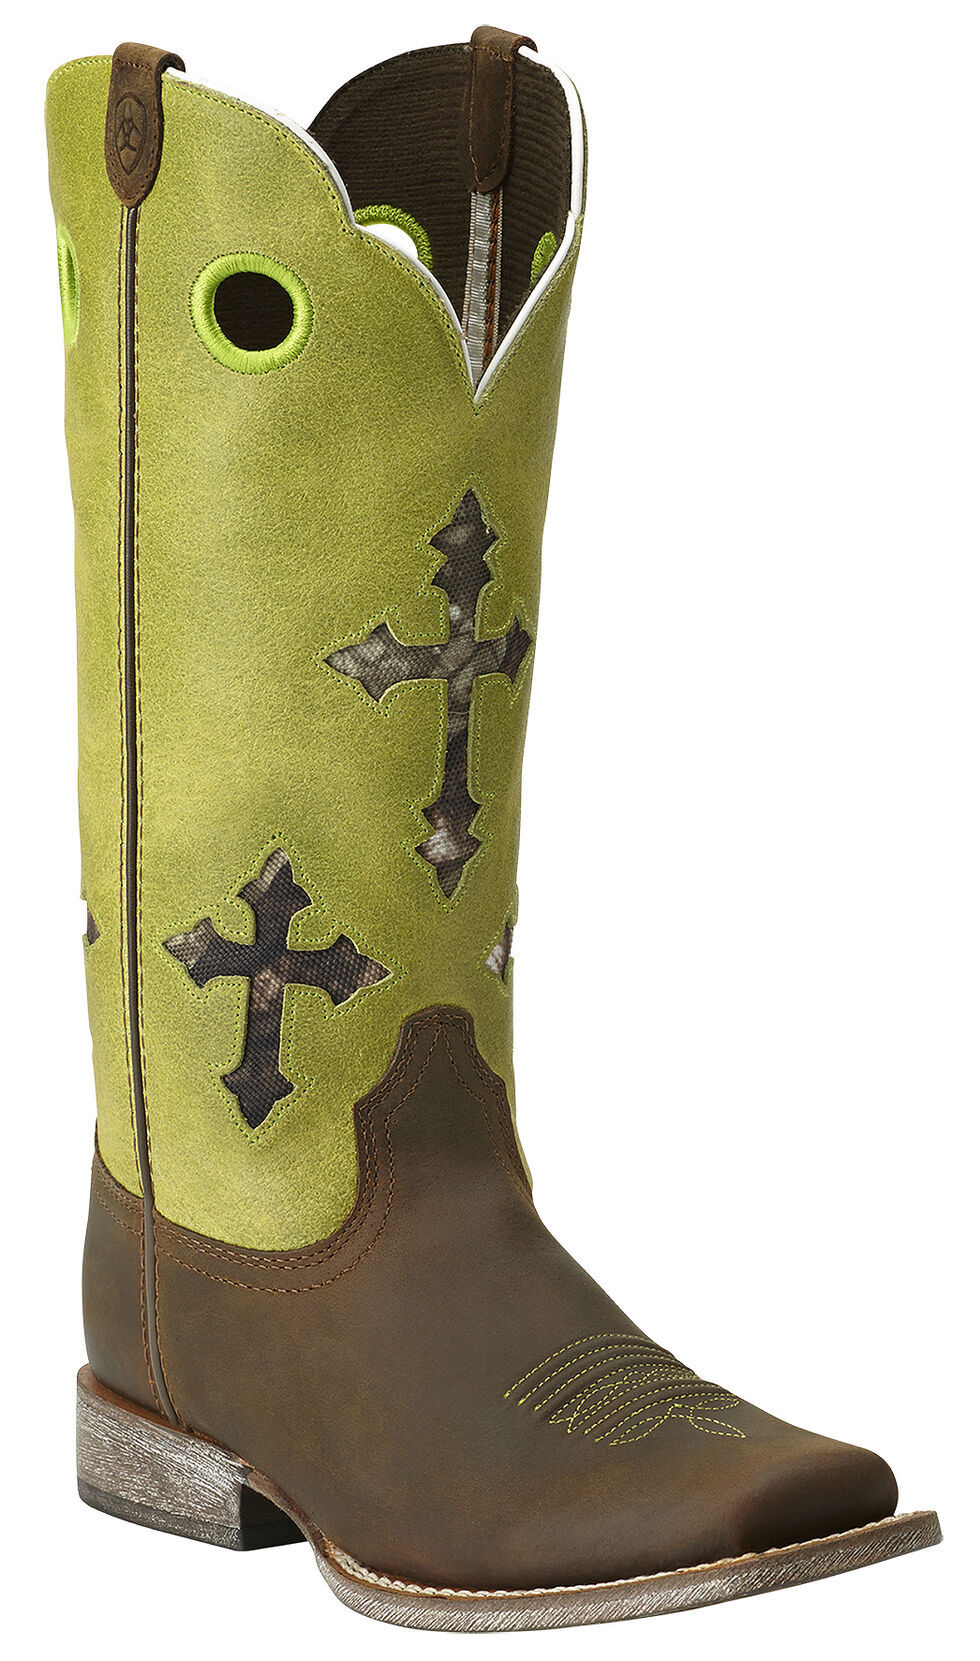 Ariat Girls' Ranchero Cross Cowgirl Boots - Square Toe, , hi-res